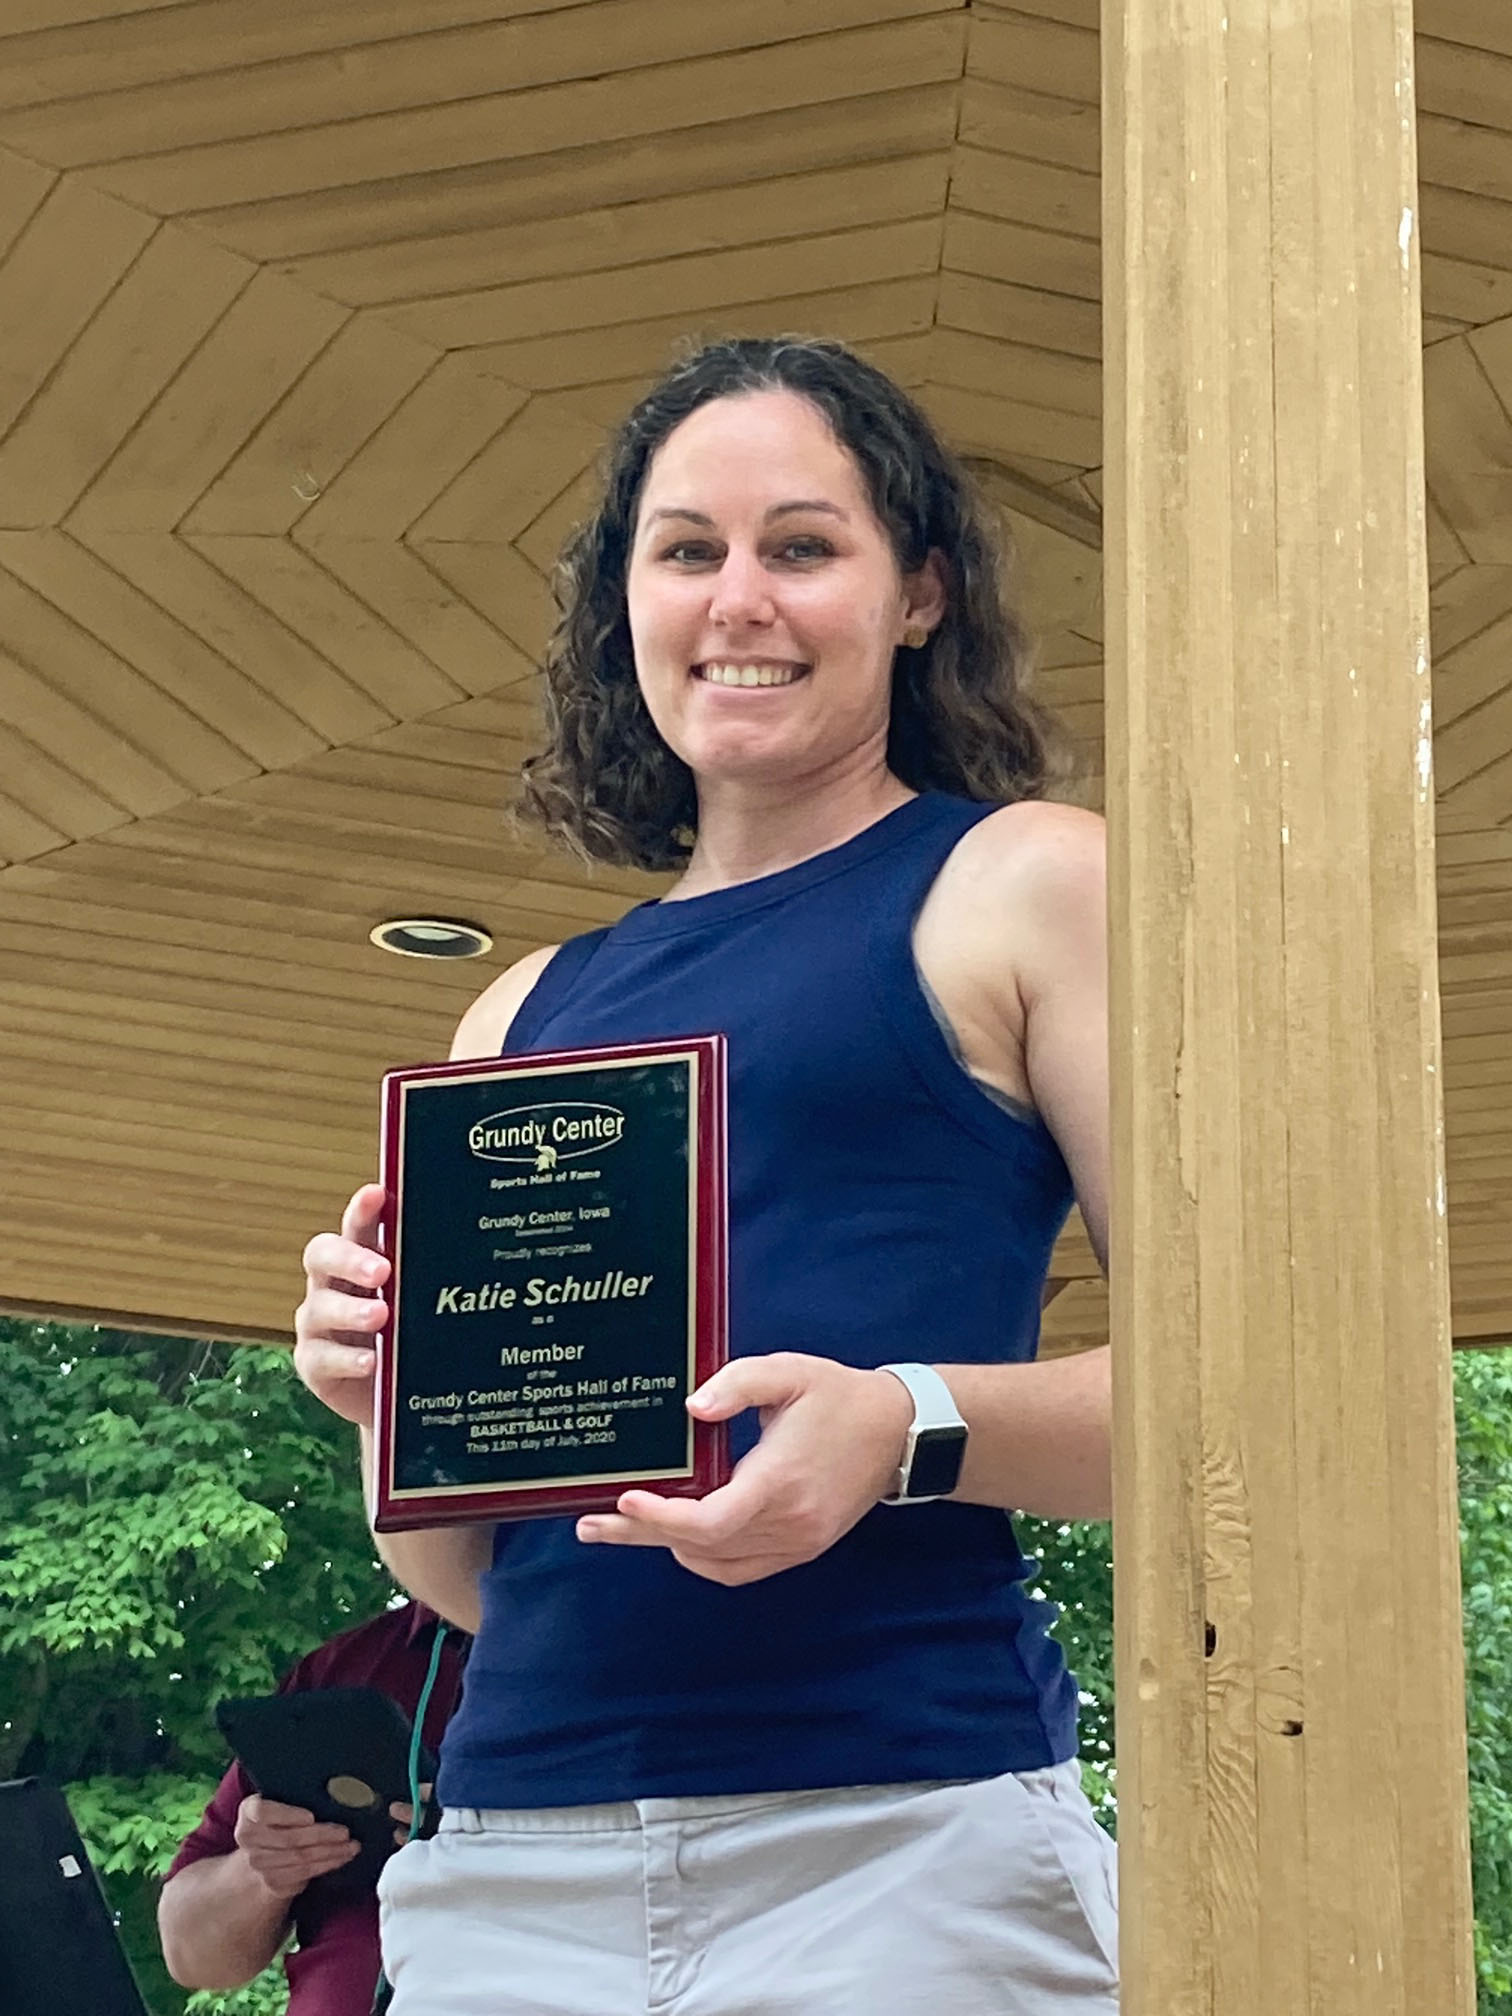 Katie Schuller was inducted into the 2020 Hall of Fame class for her accomplishments in basketball and golf.